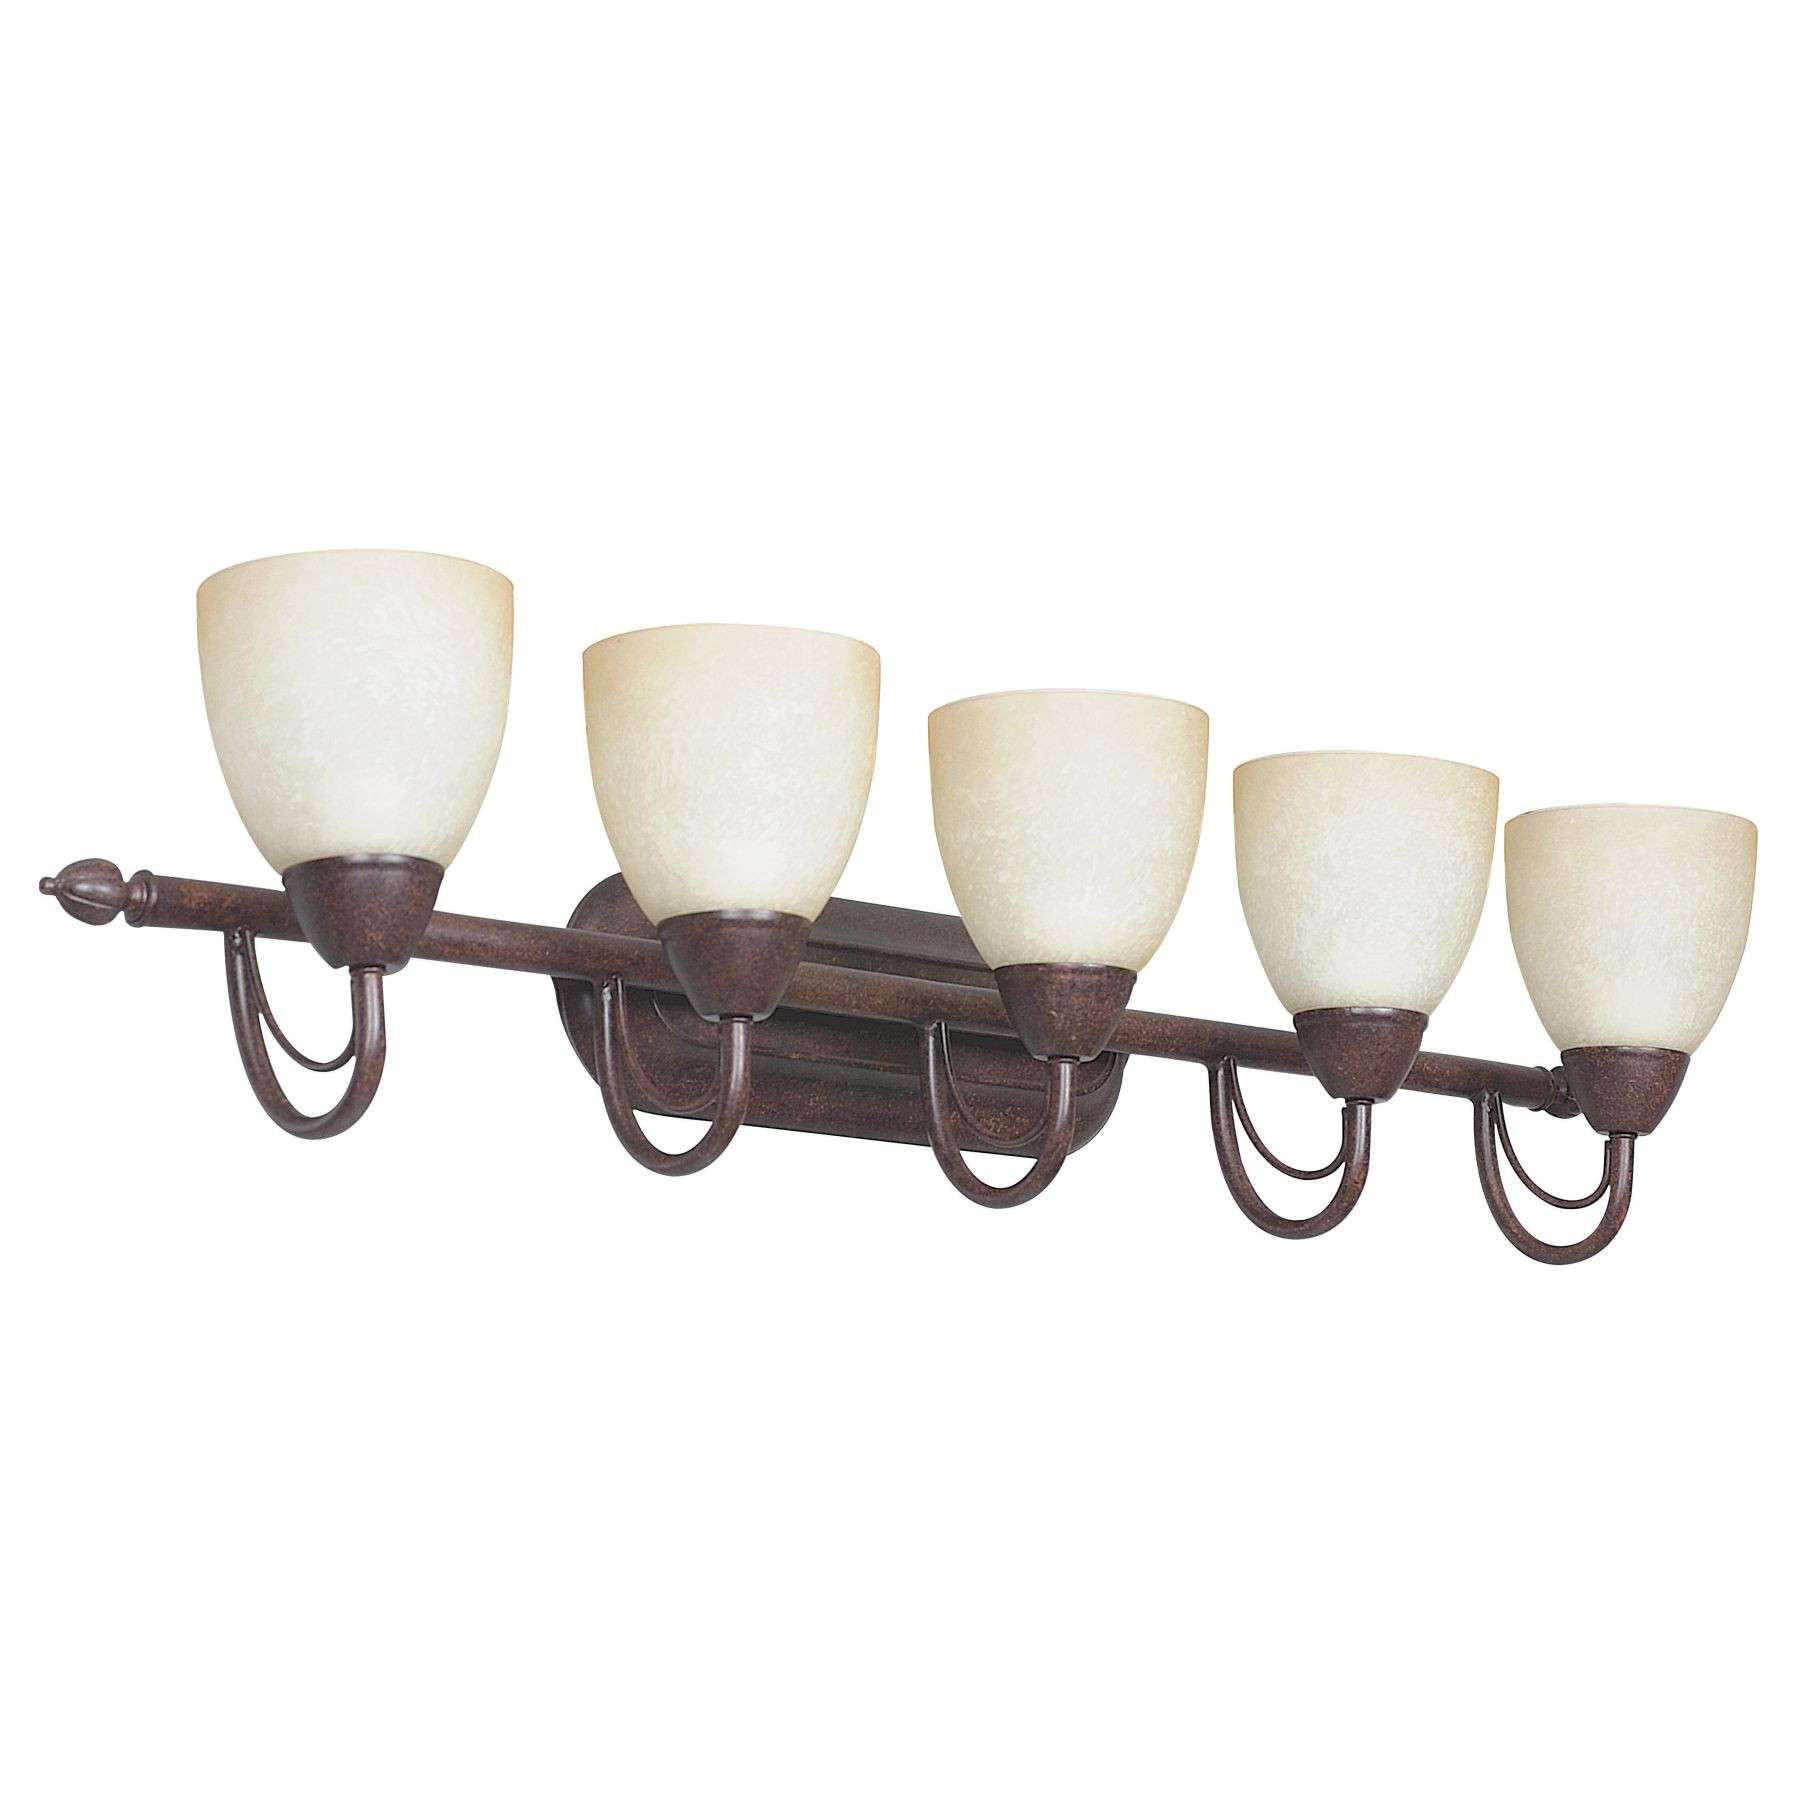 Sunset Lighting F2495-62 36 inch 5-light Tempest Vanity in Rubbed Bronze Finish